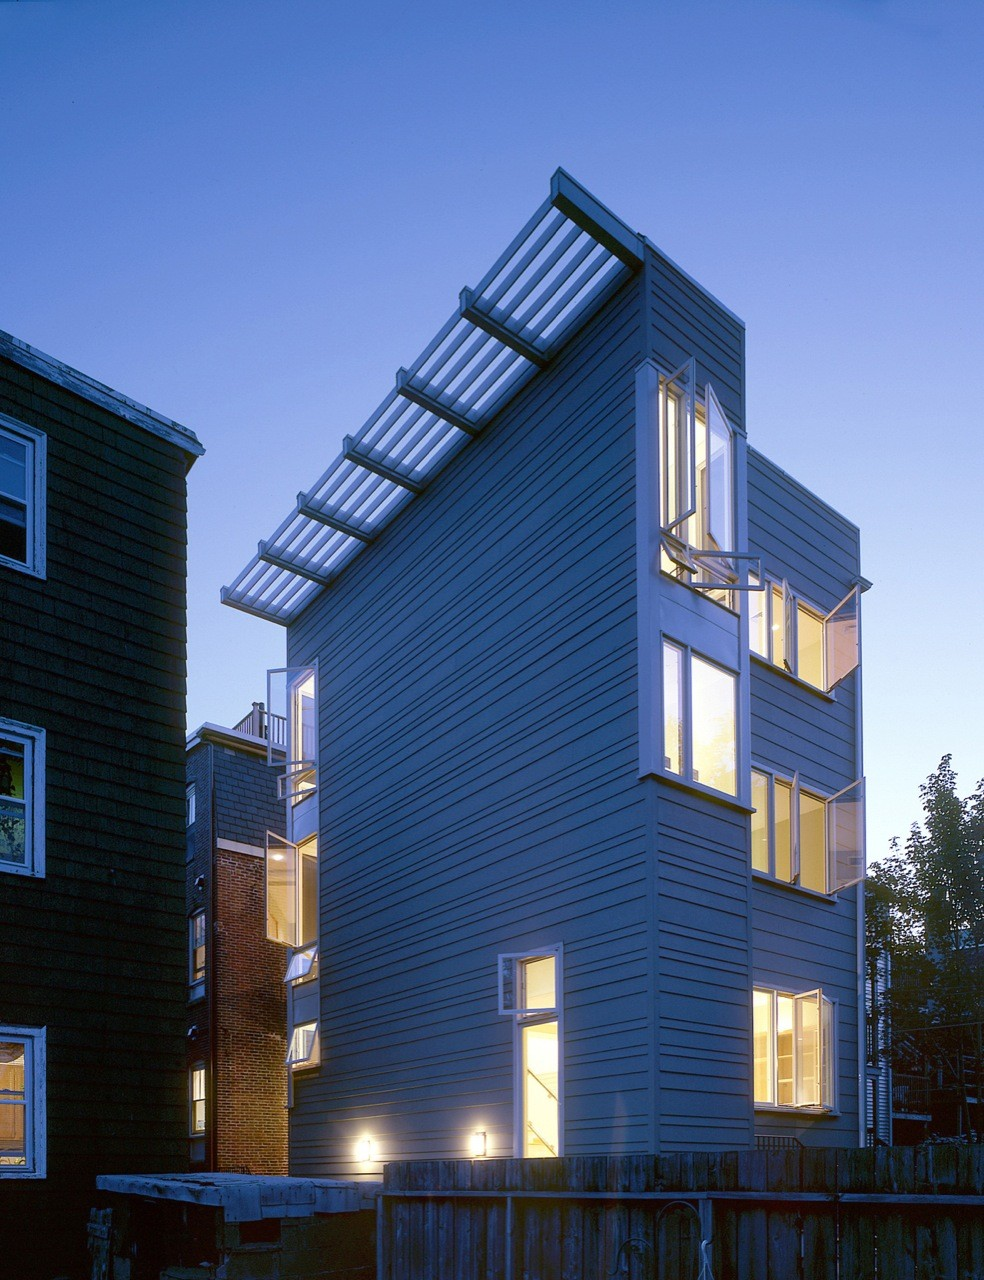 East 6th Street House / Touloukian Touloukian Inc., © Stephen Lee Photography